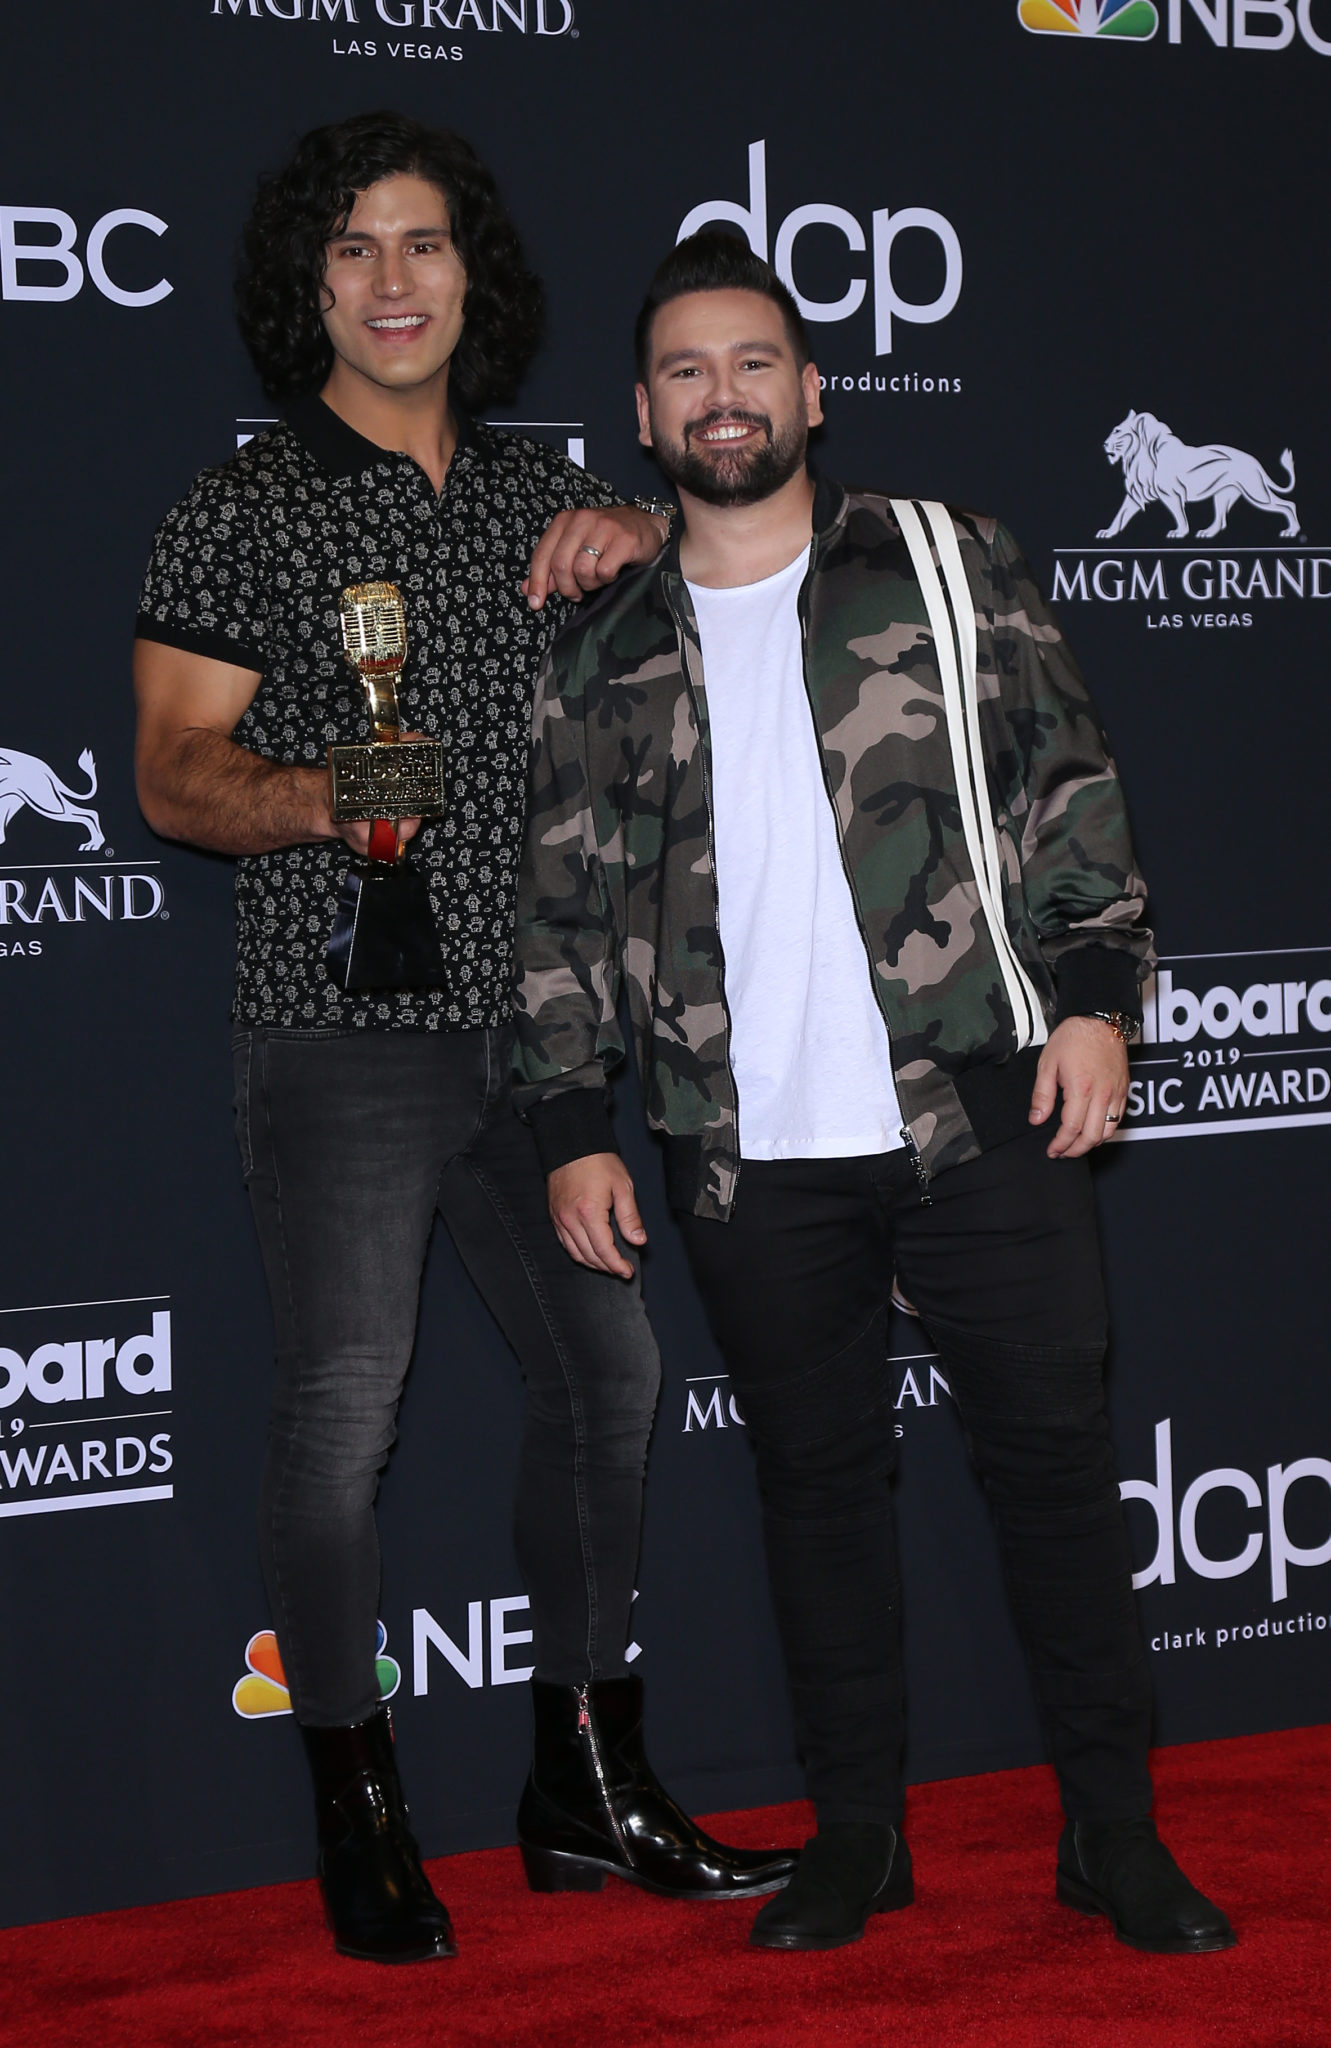 Billboard Music Awards 2019: Drake Leads The Way With 12